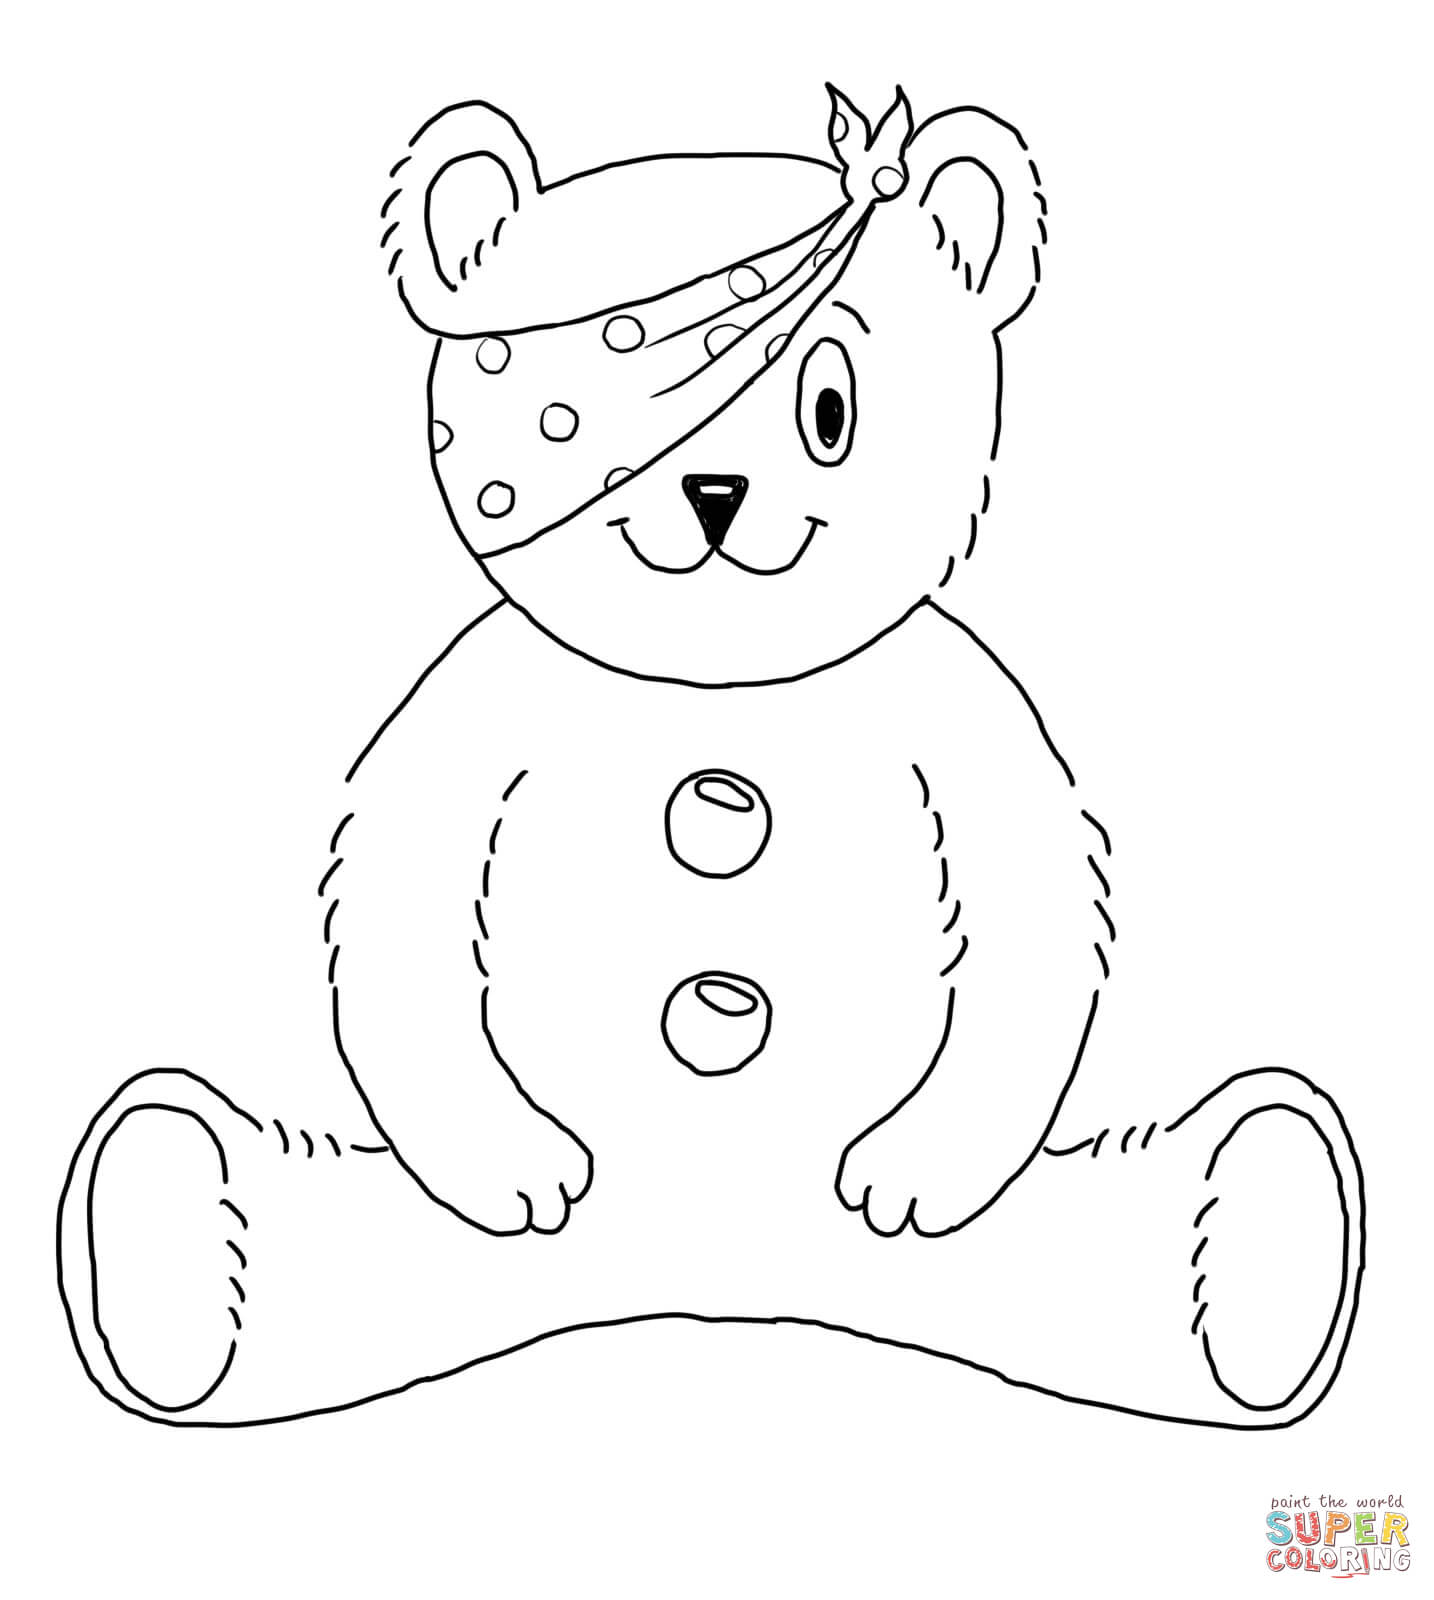 pudsey bear to colour pudsey bear colouring template classroom ideas colour to pudsey bear